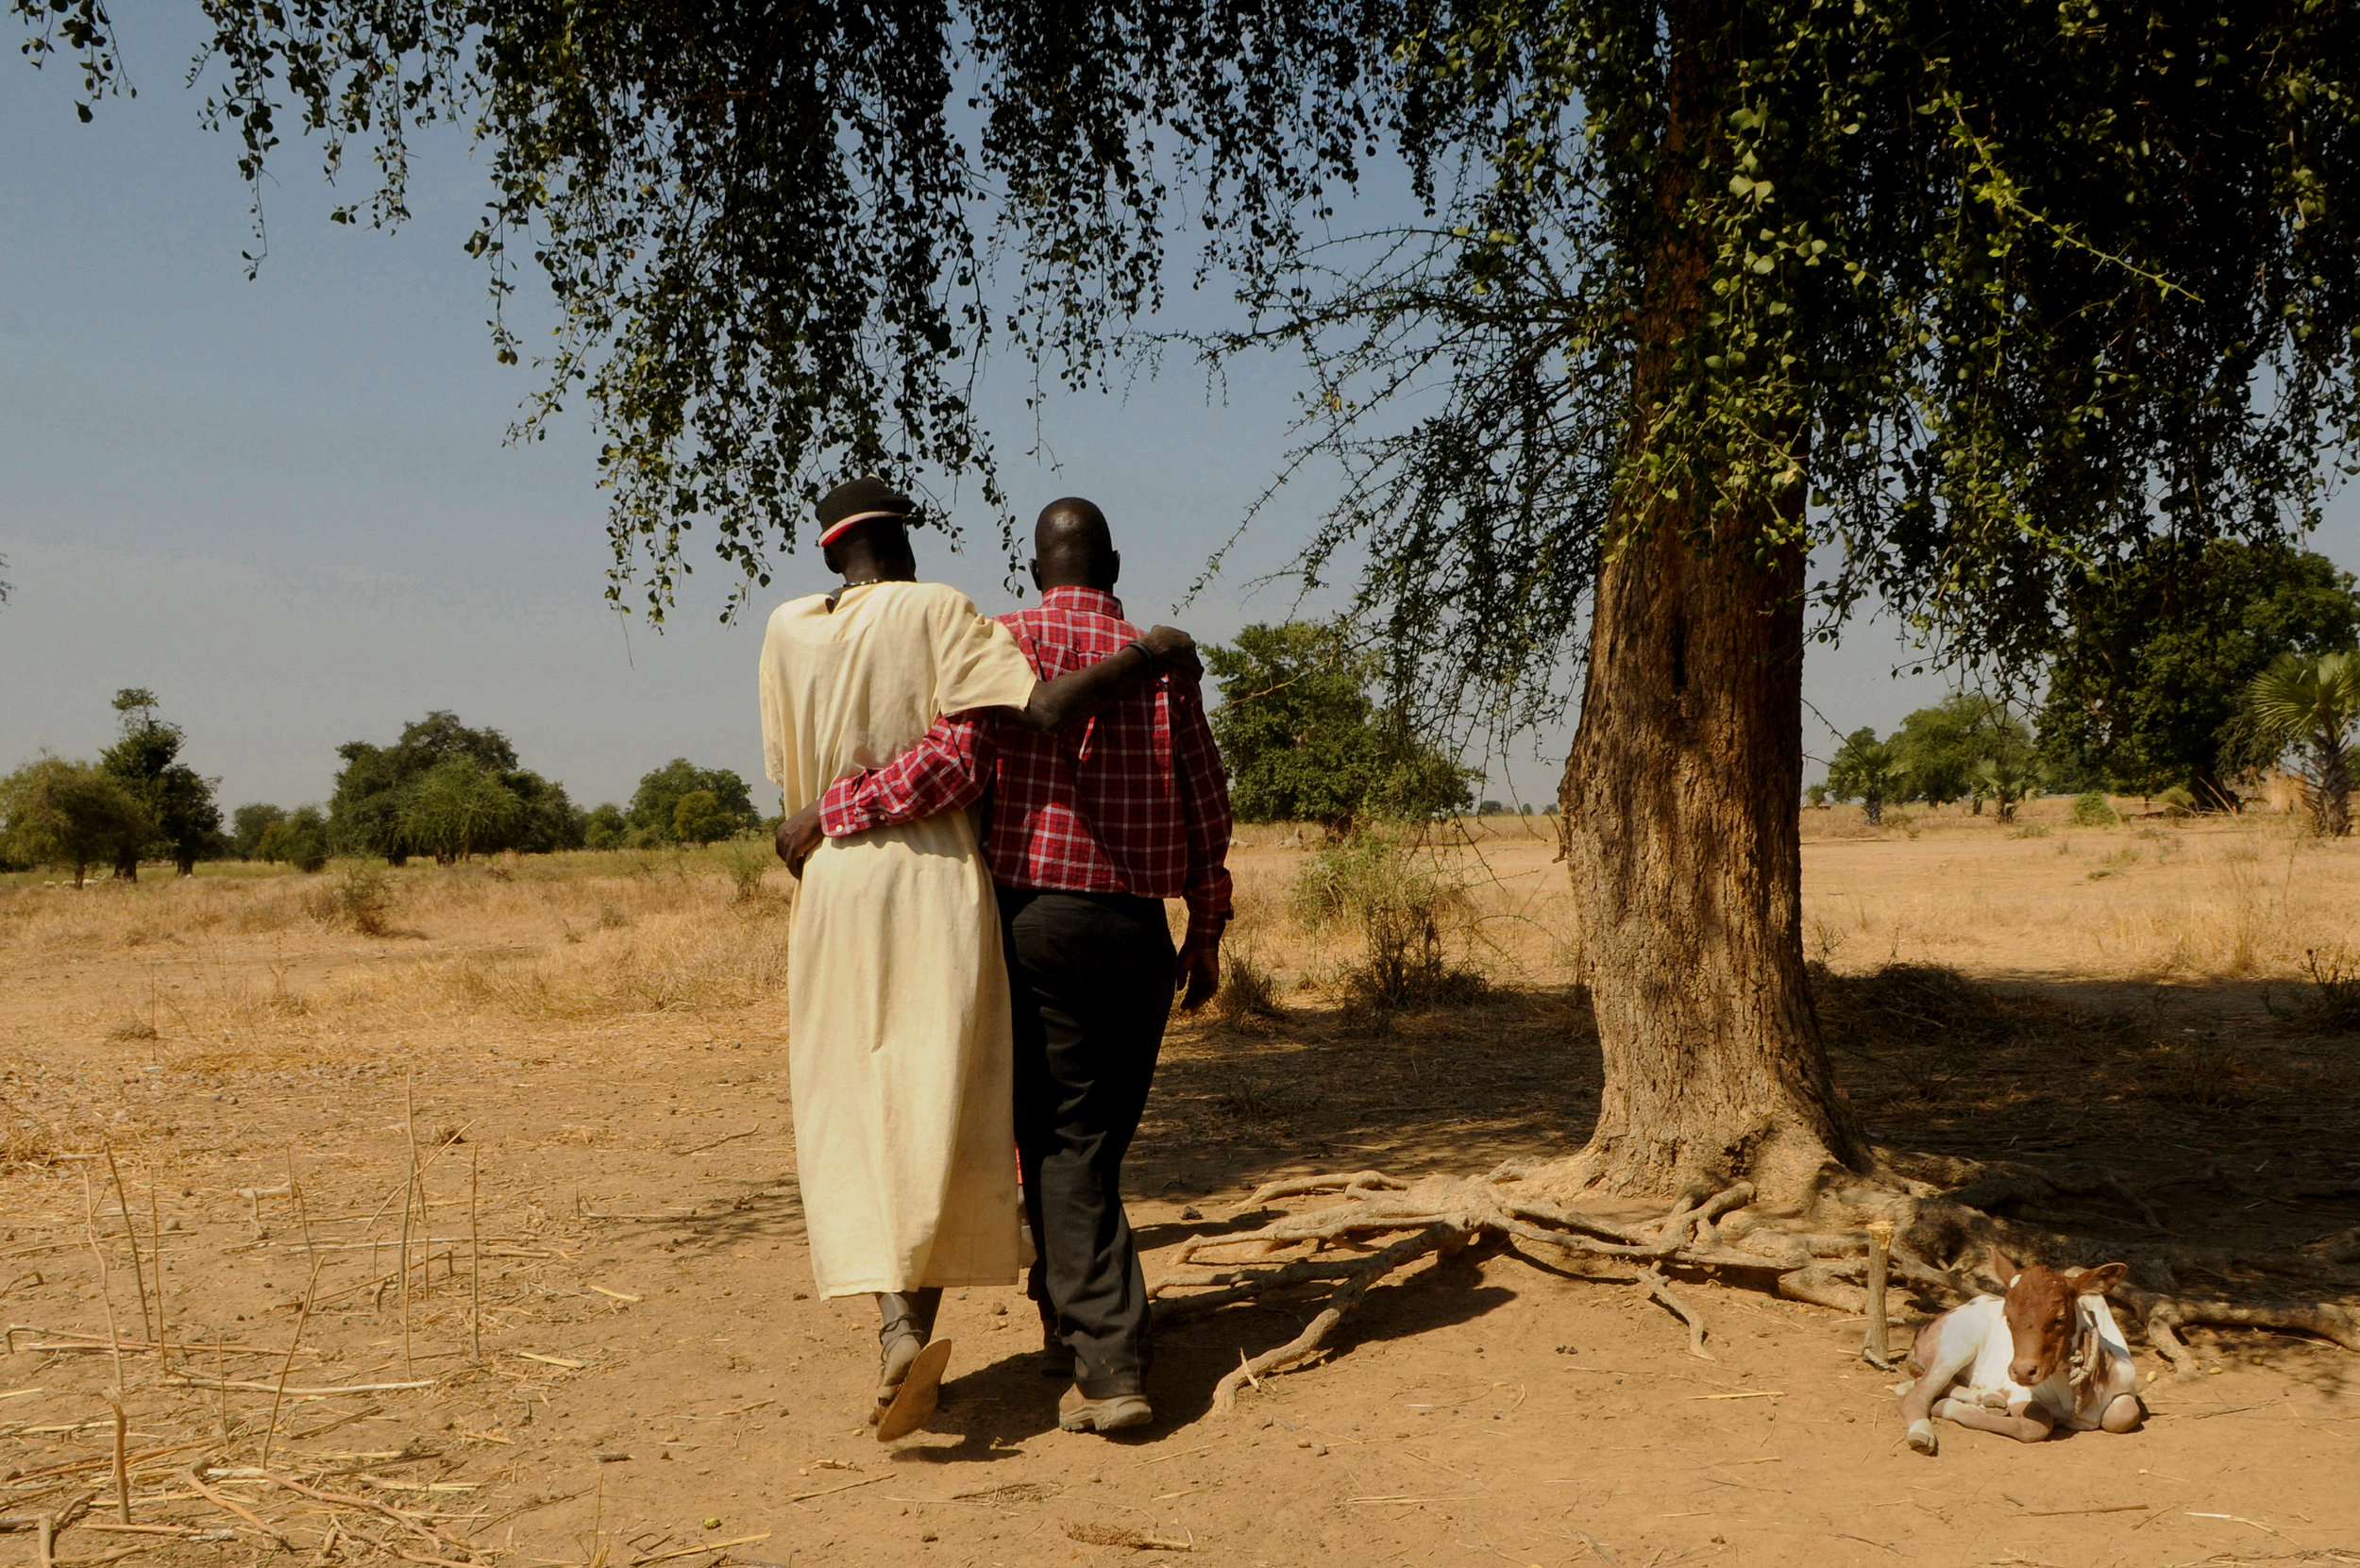 Gabriel Bol Deng, who raised money for wells and a school for his home village of Ariang, visits the tree where his mother and his placenta are buried, a Dinka tradition. Garang Deng Majok, Gabriel's uncle, performed a traditional water ceremony blessing Gabriel.